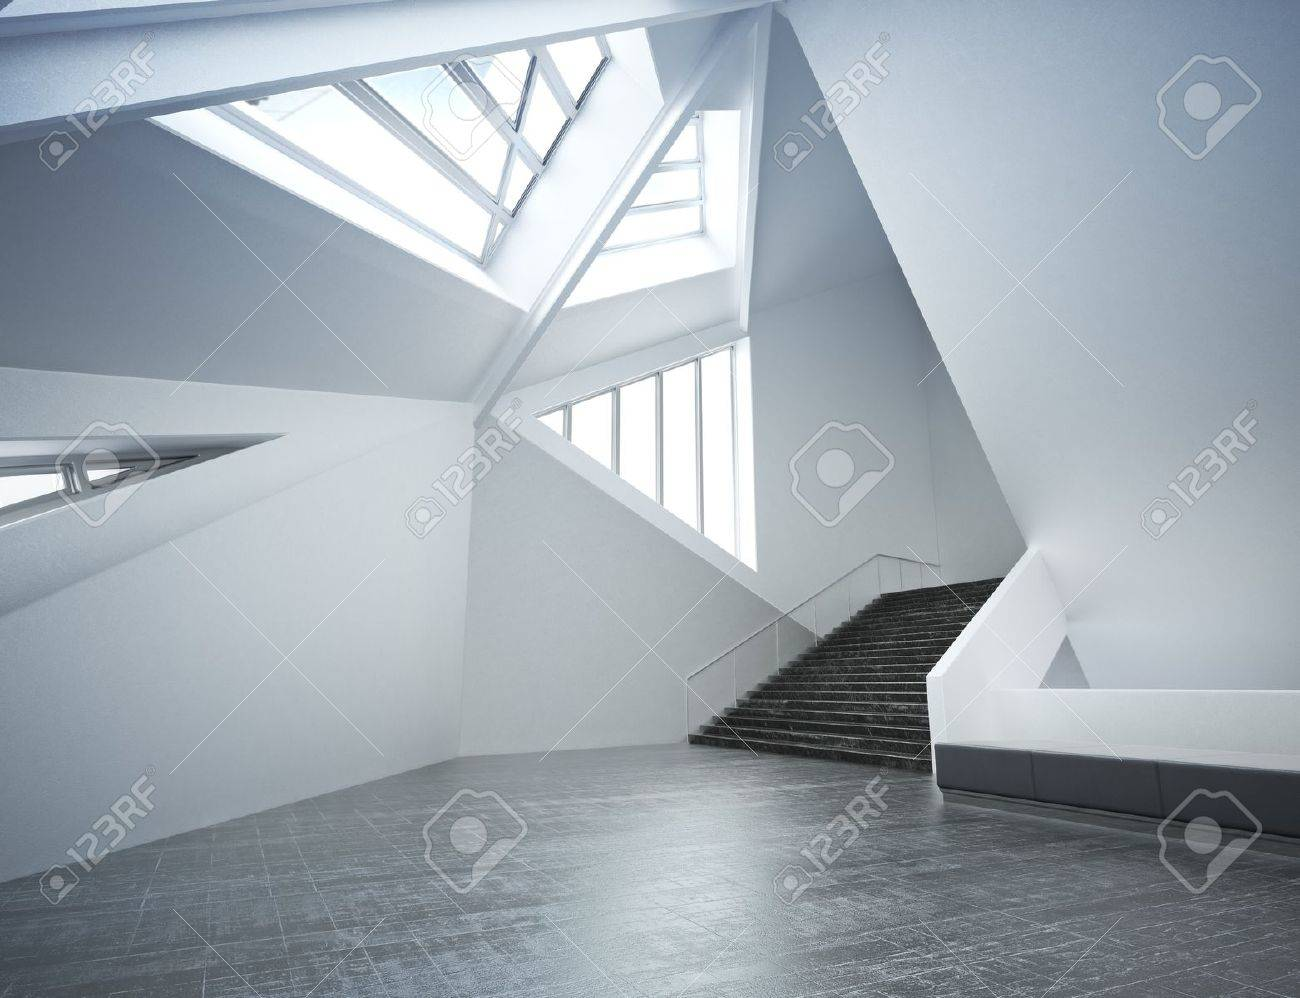 Modern New Interior Empty Room Apartment Or Office Business Stock Photo Picture And Royalty Free Image Image 17982857